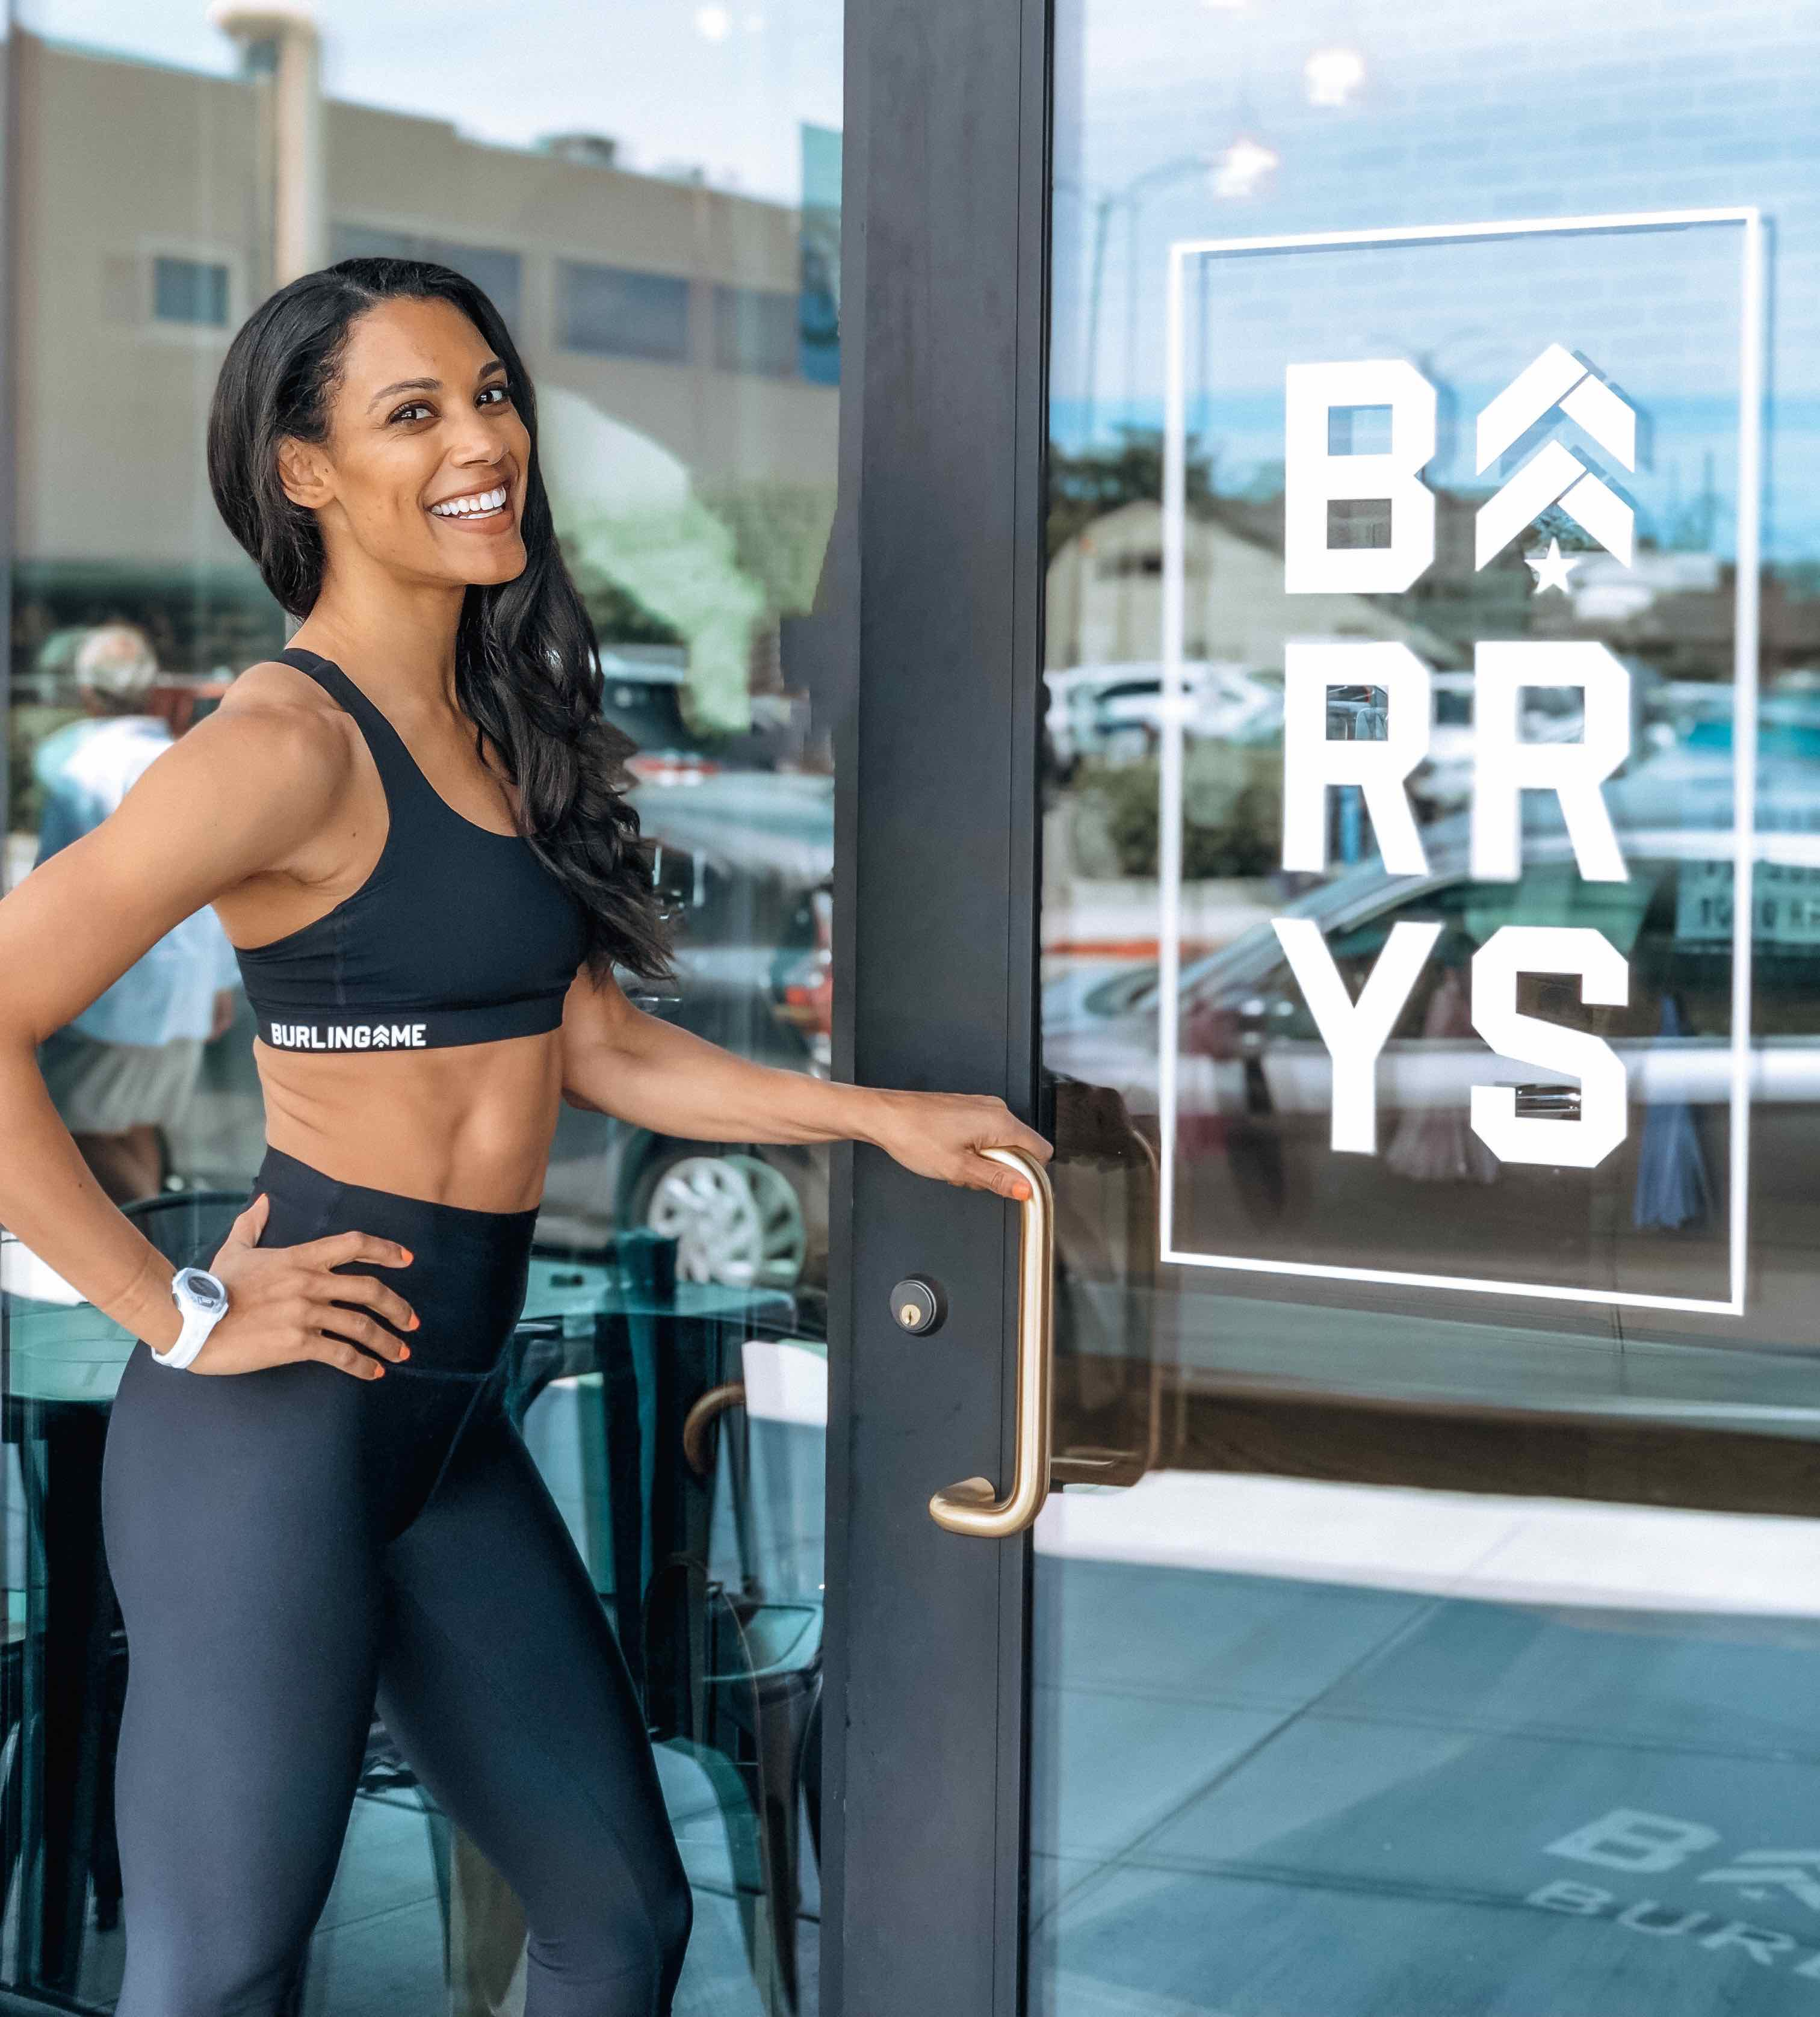 Barry's Bootcamp: My Journey From